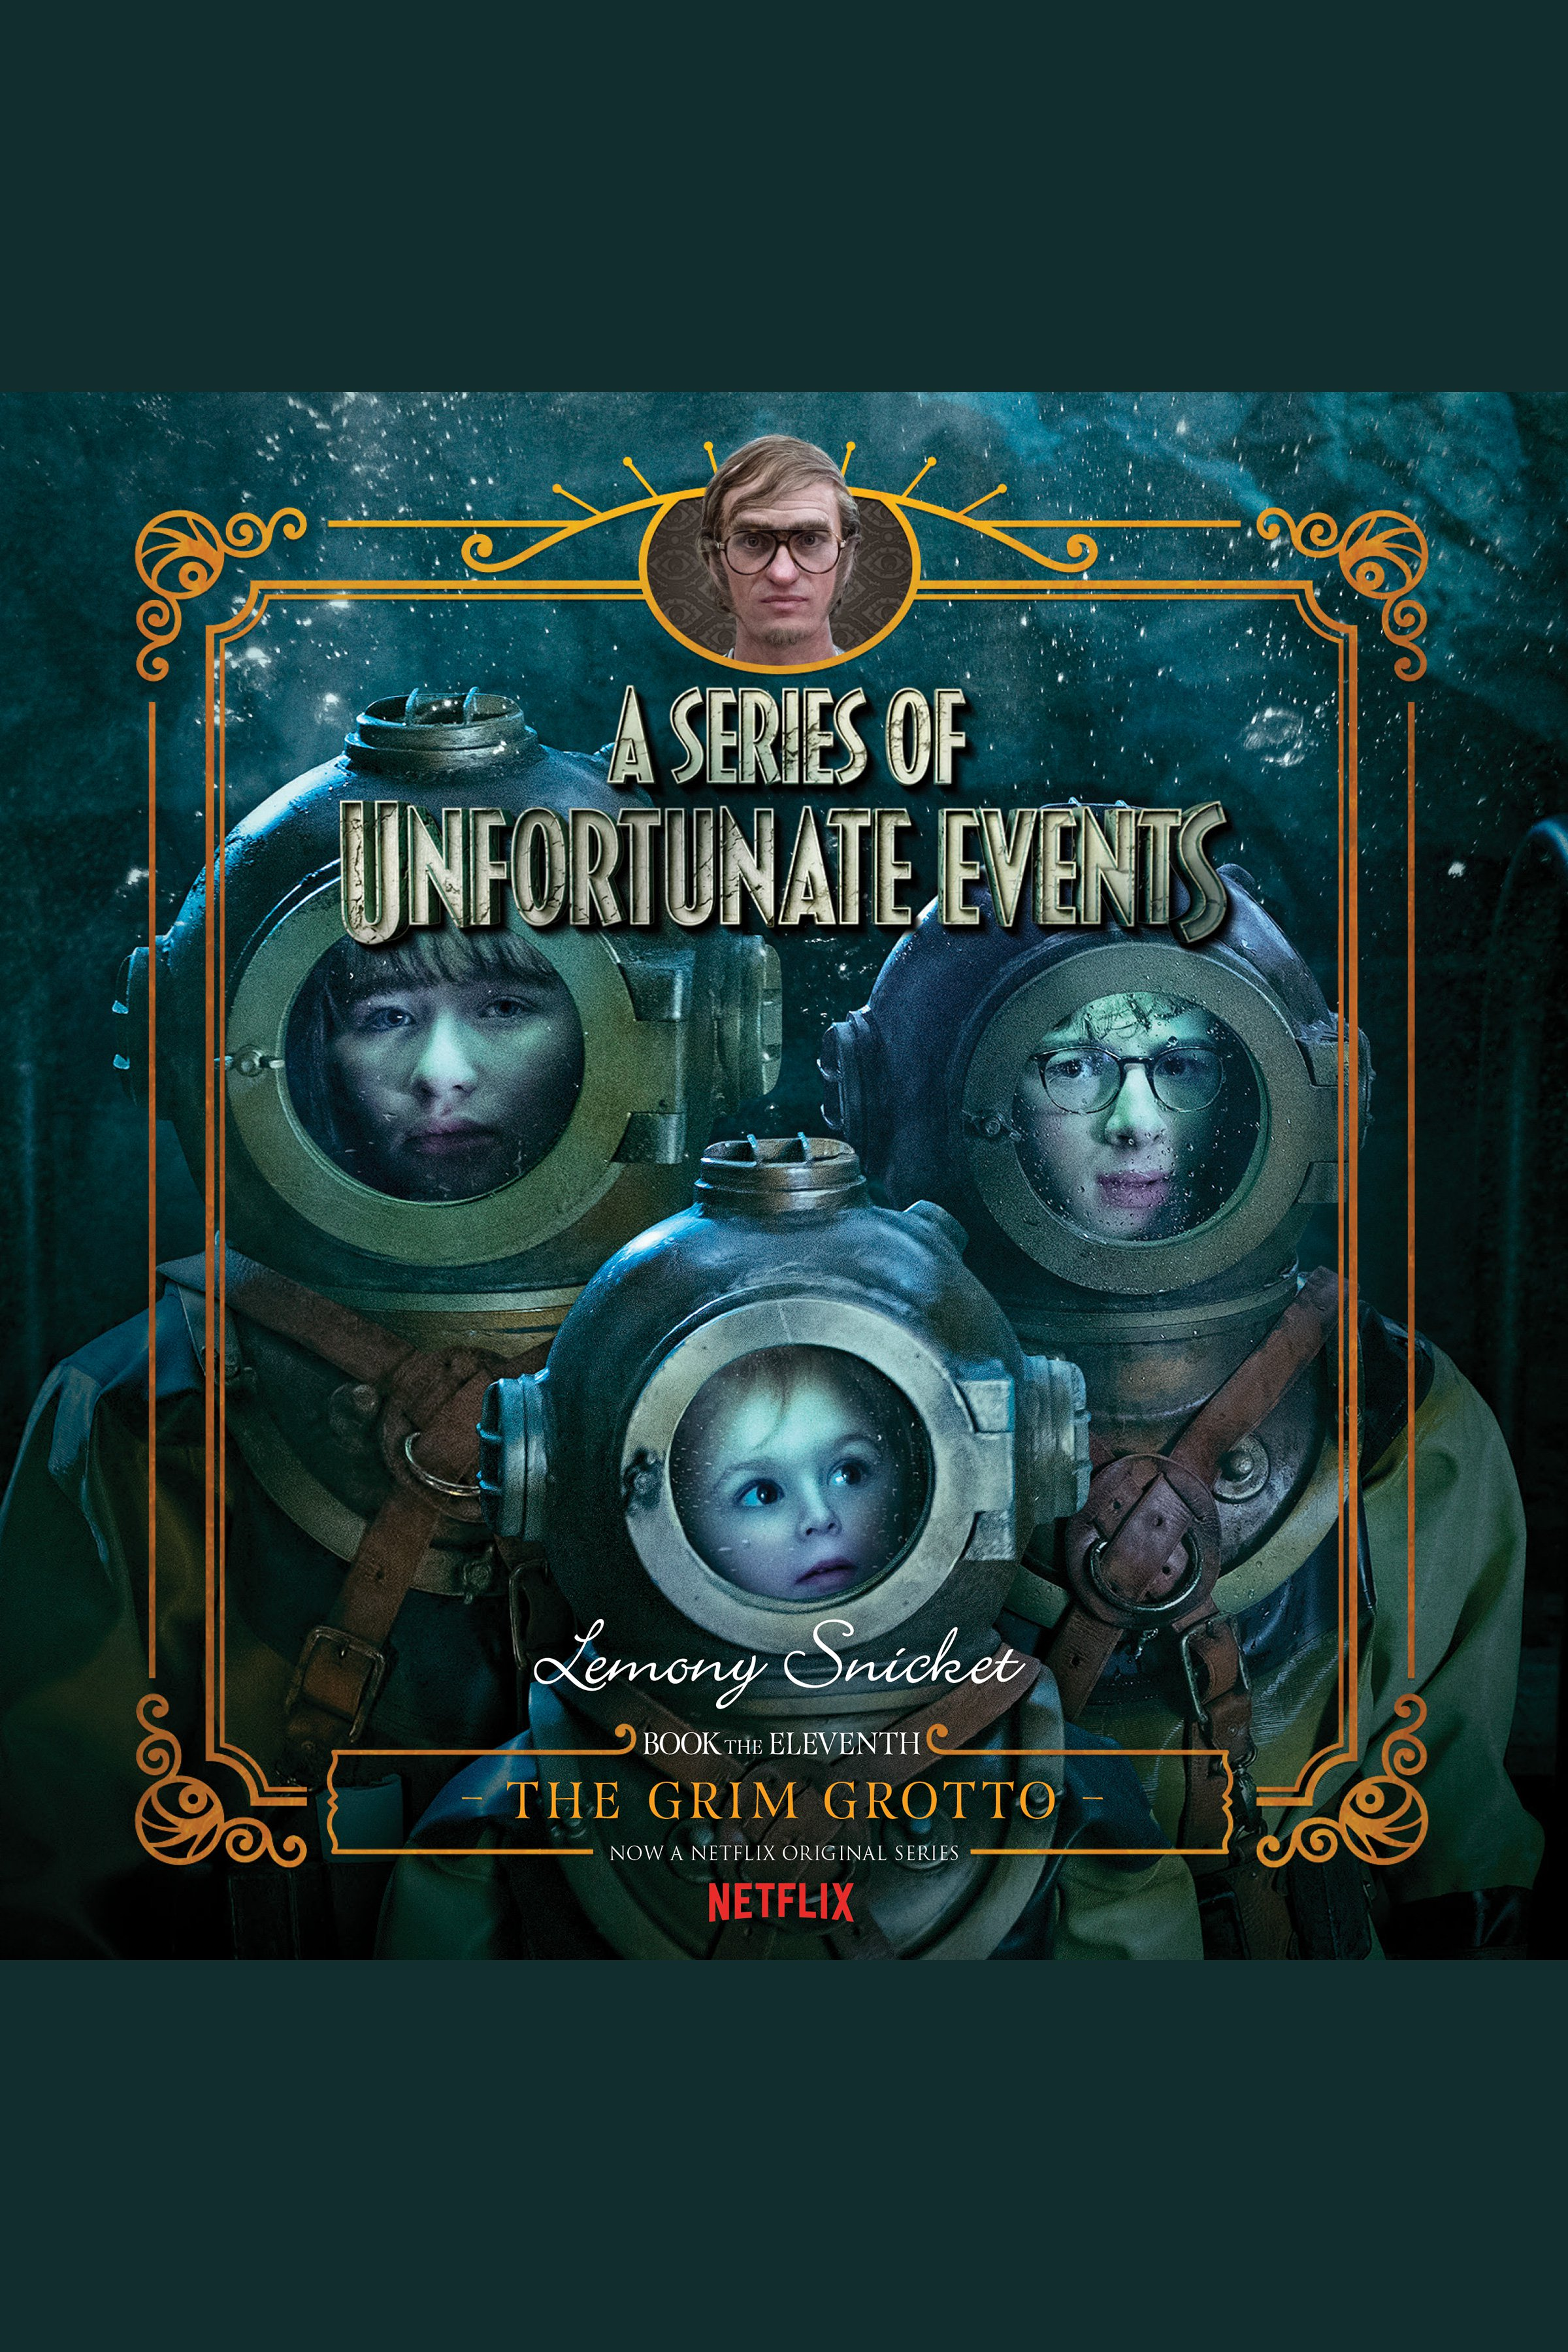 The Grim Grotto A Series of Unfortunate Events #11